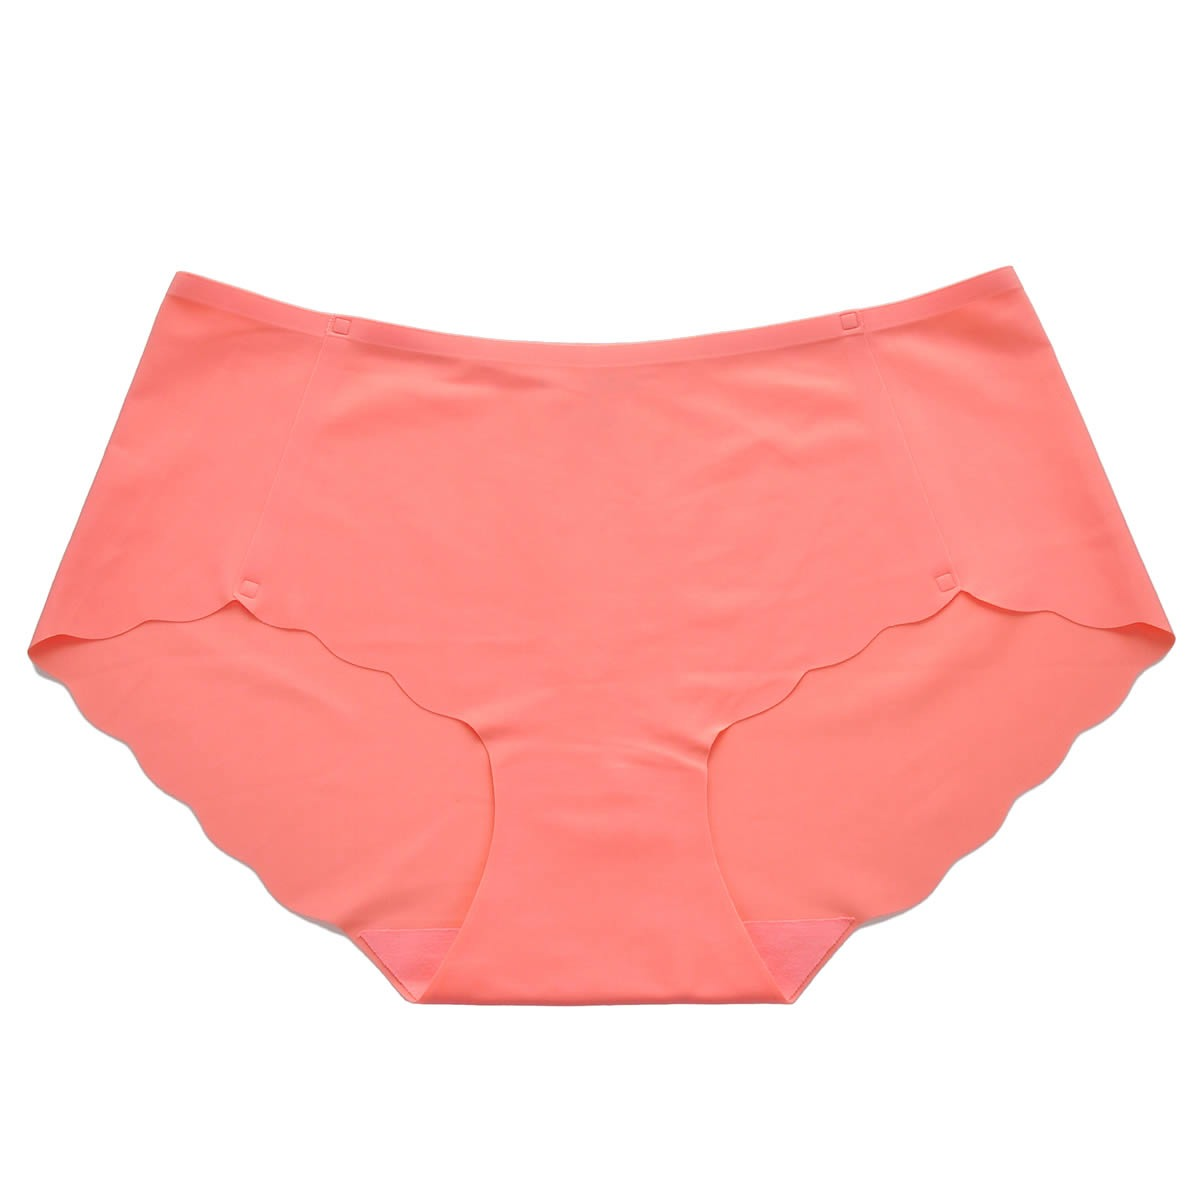 b602c160c3c New Seamless Laser-cut Soft Low Rise Invisibles Hipster Underwear XS S M L  XL